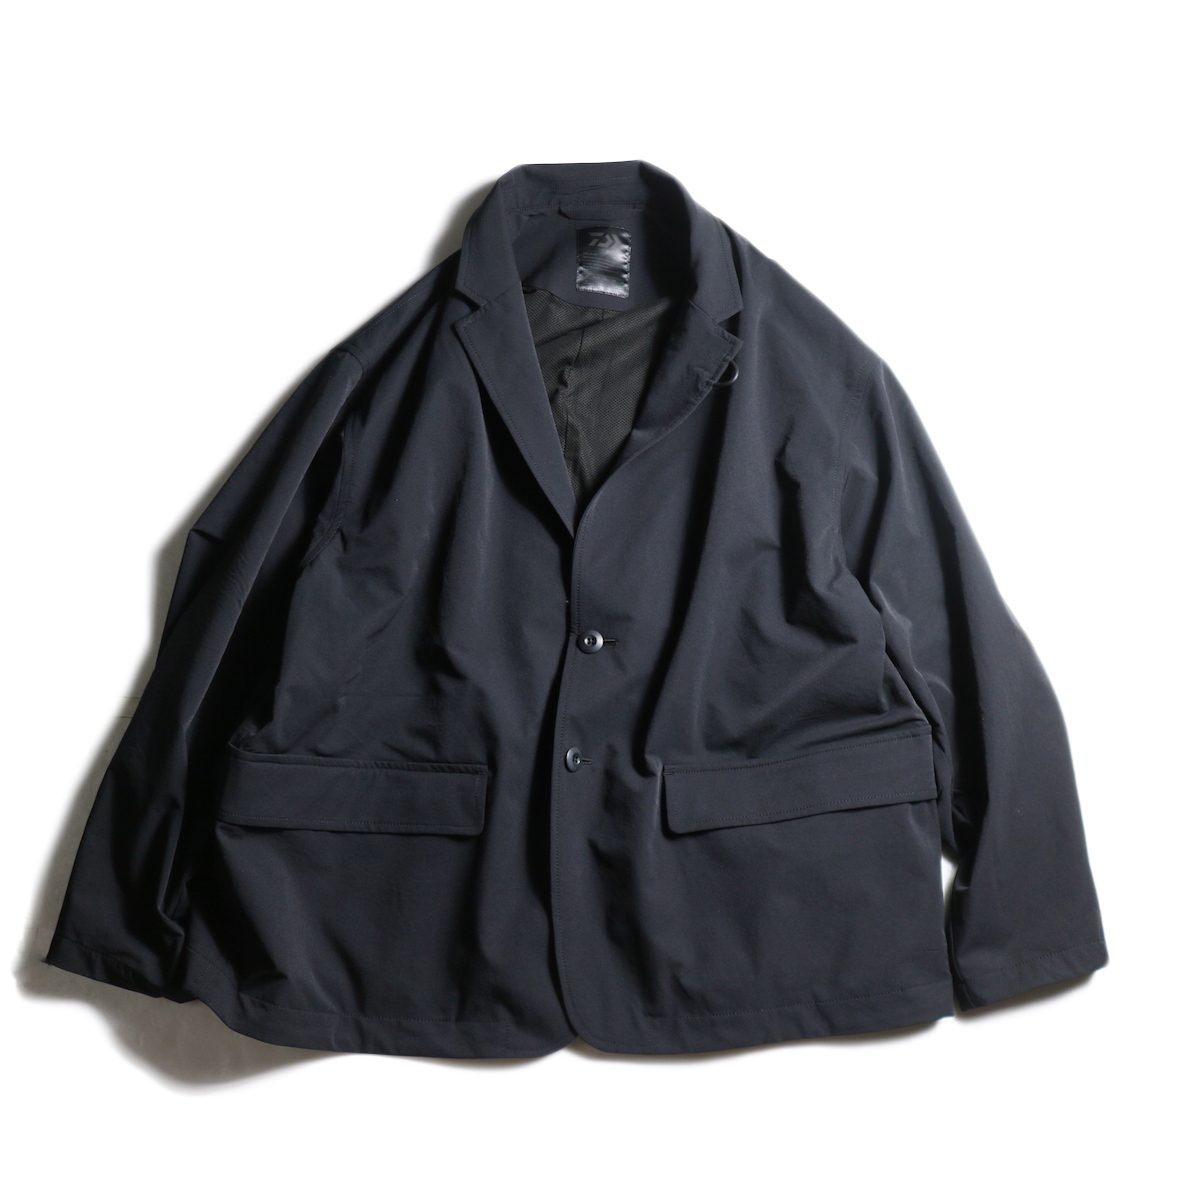 DAIWA PIER39 / Loose Stretch 2B Jacket (Black)